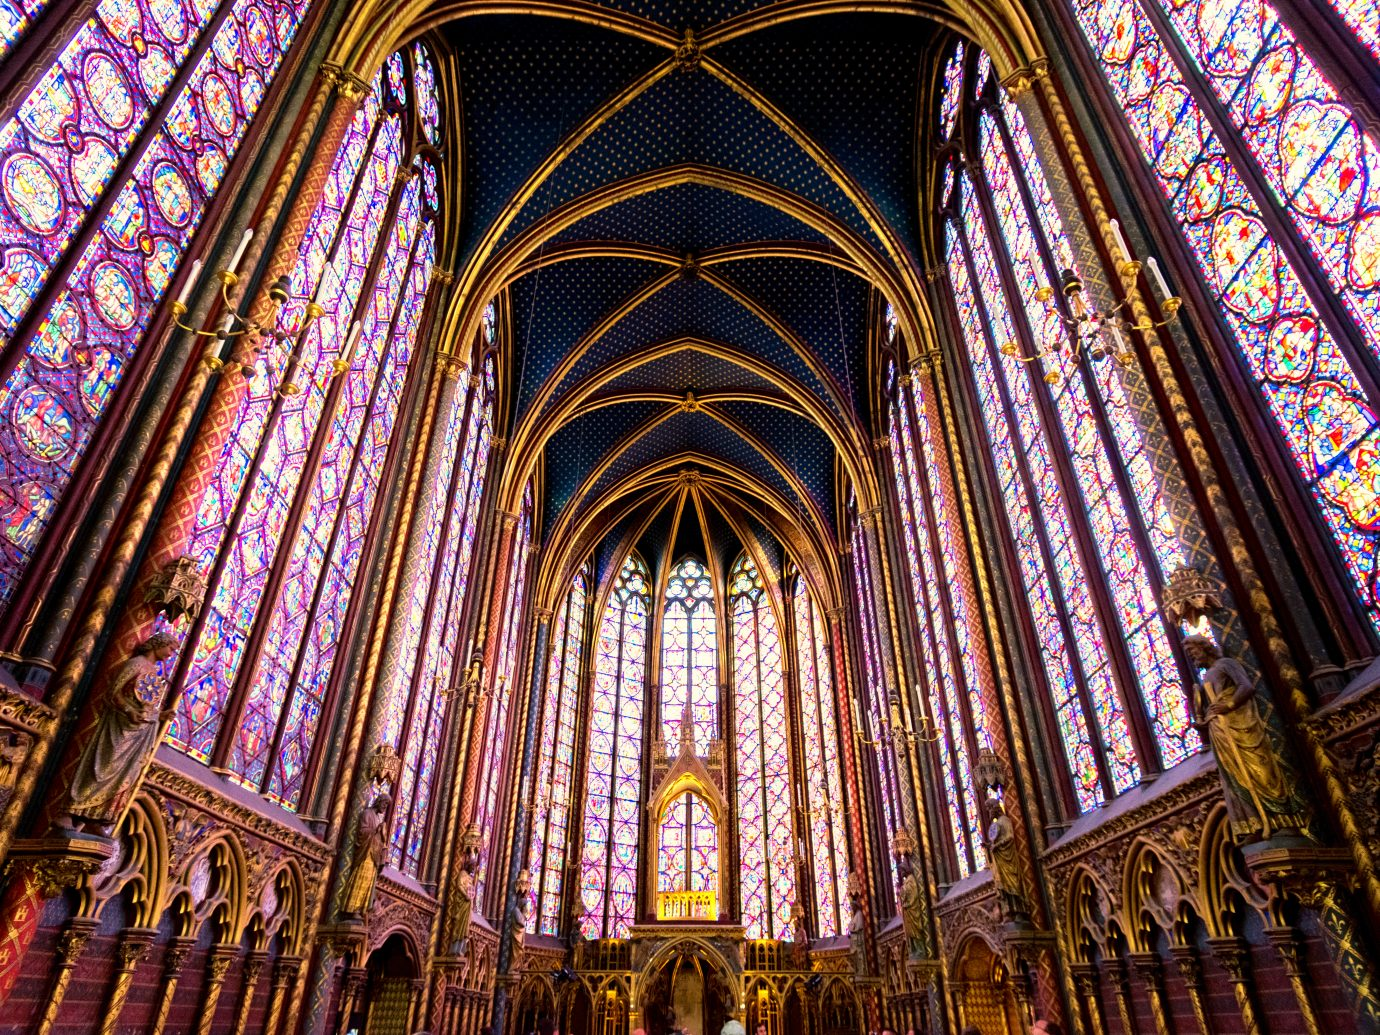 Sainte-Chapelle in Paris, France.